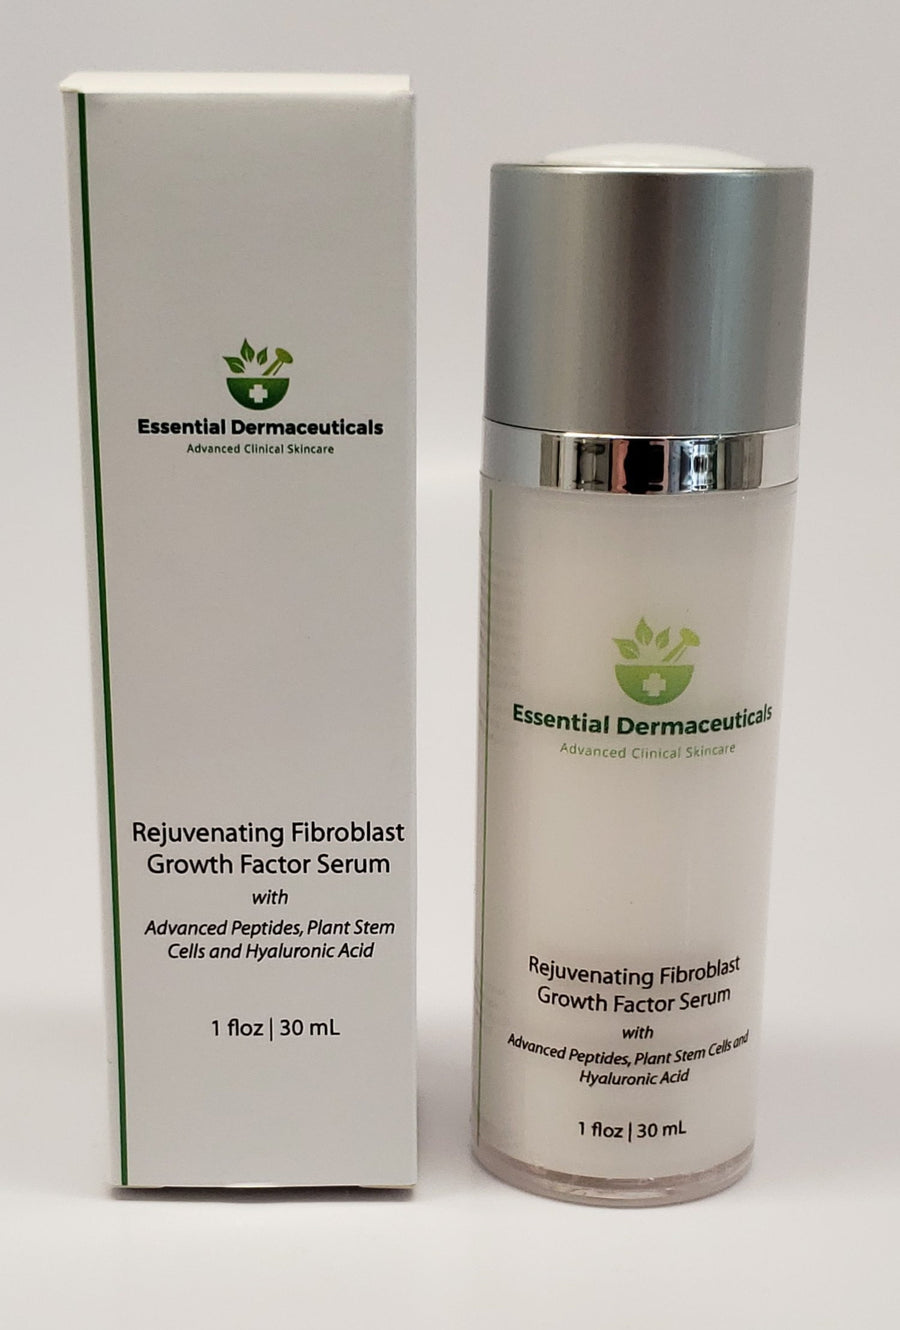 Rejuvenating Fibroblast Growth Factor Serum